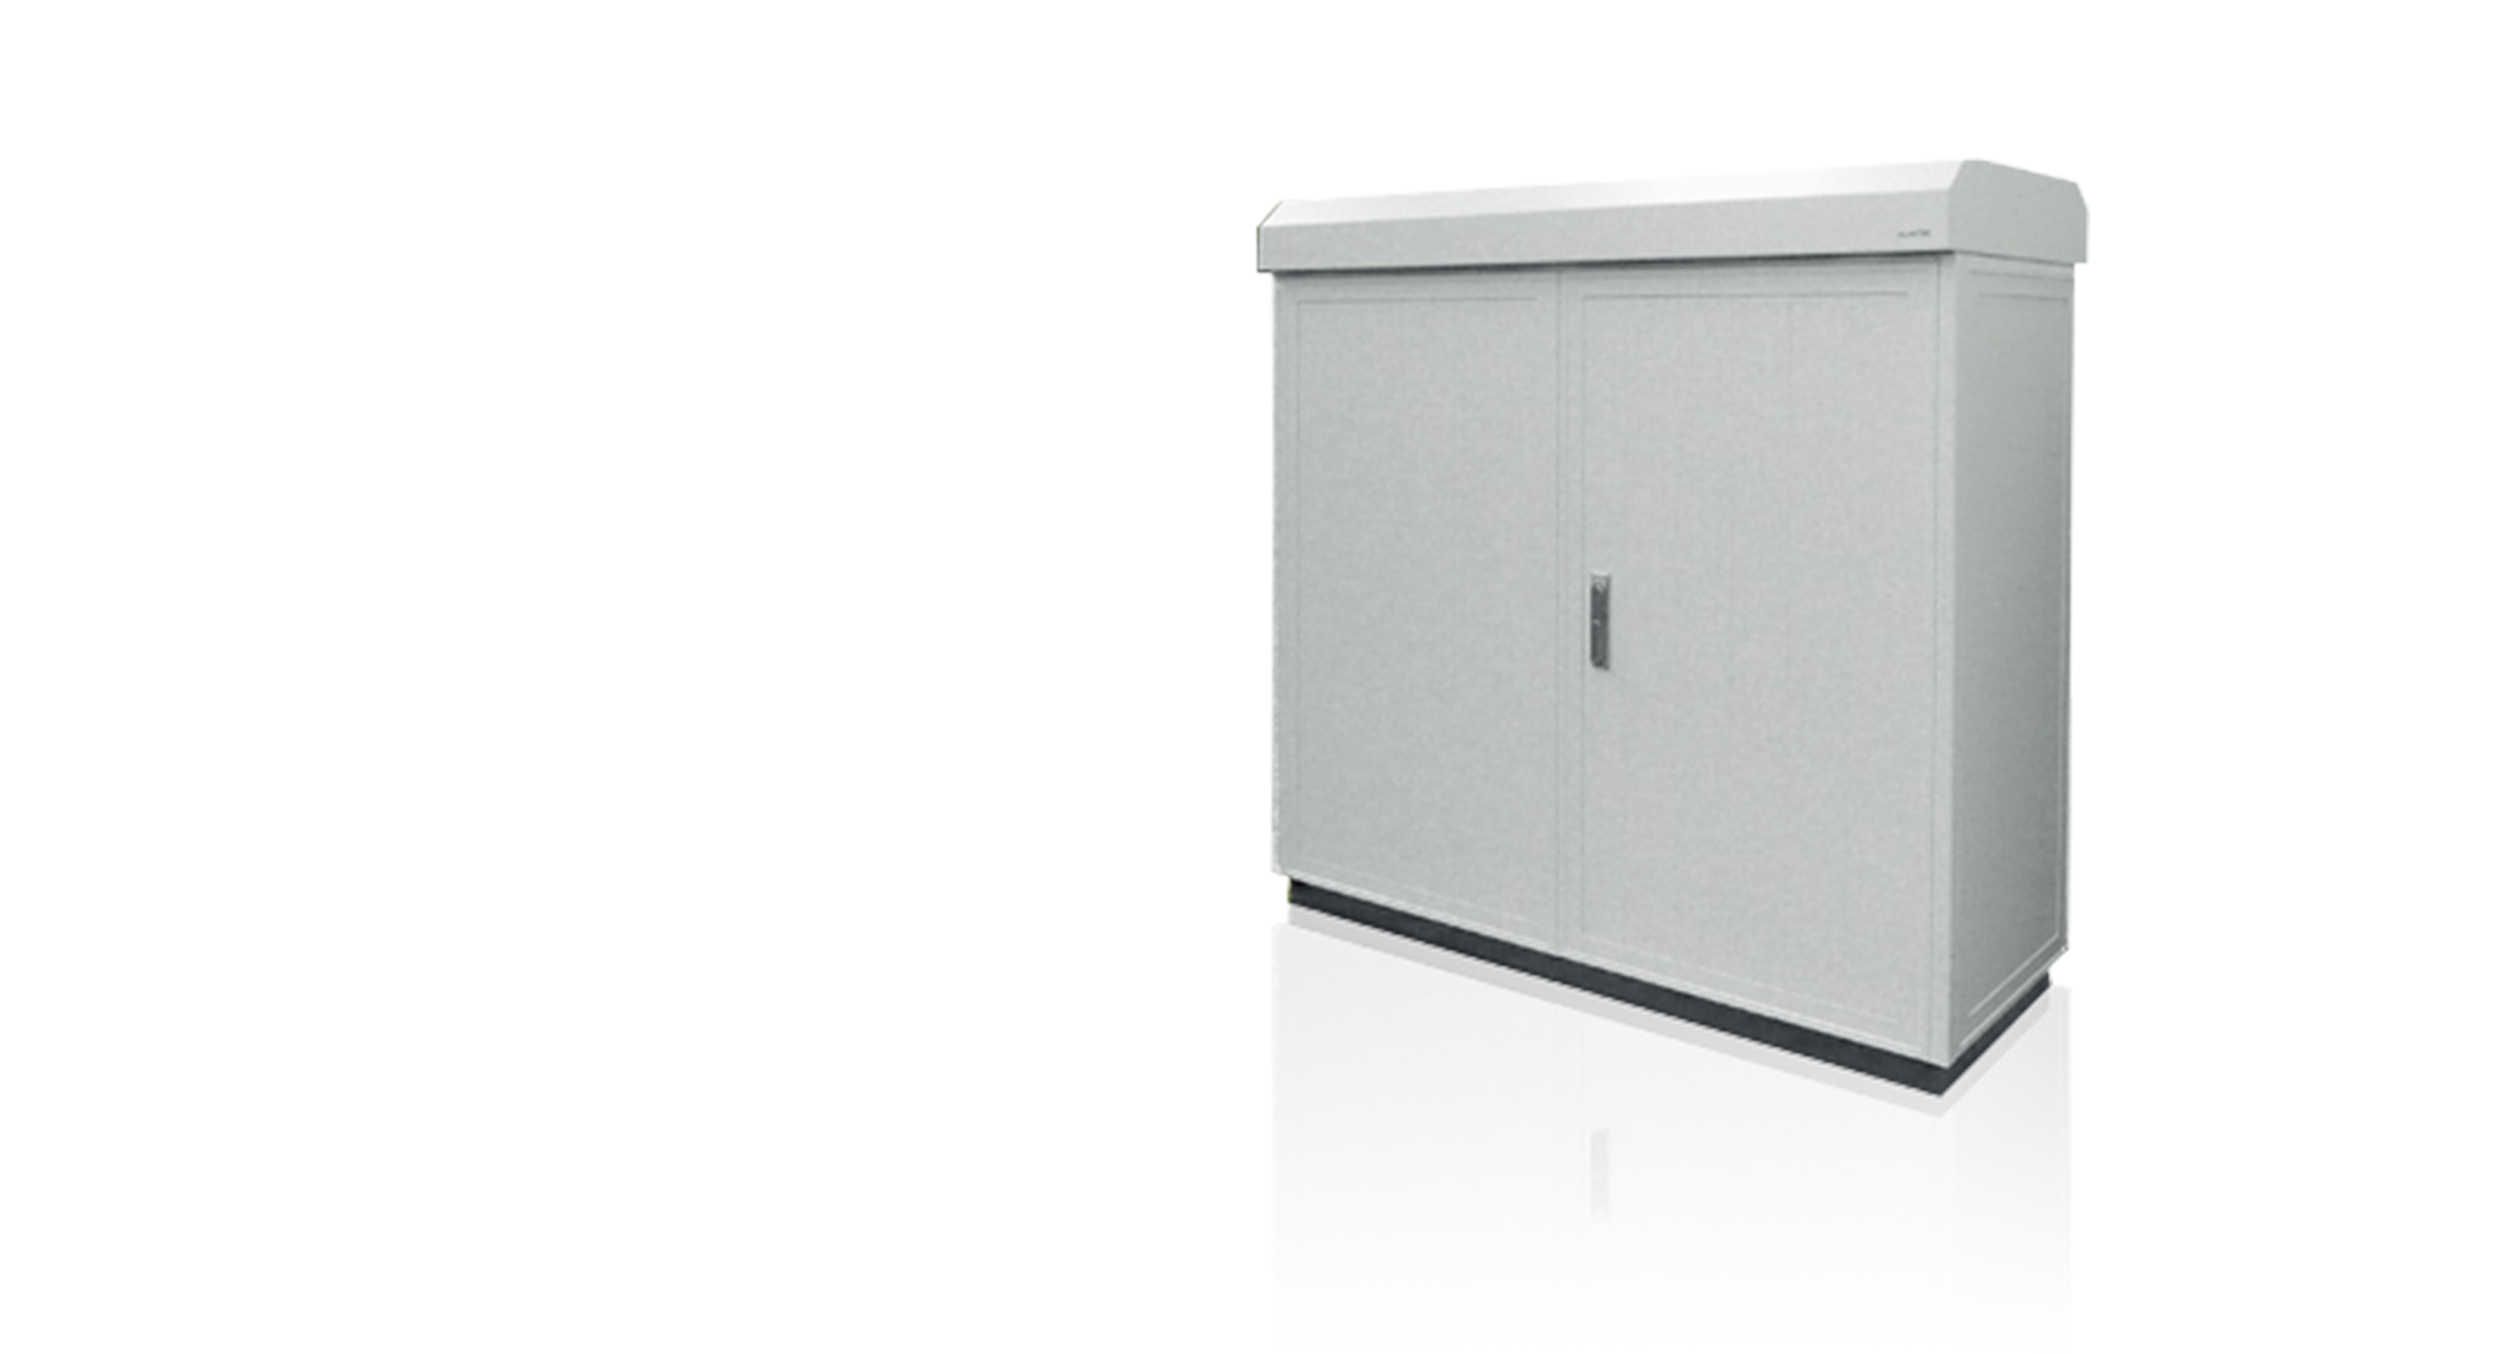 Booths And Equipment Cabinets Duelco Exterior Wiring Enclosures Has Been Supplying Outdoor Cabinet Solutions For Almost 15 Years An Exclusive Partnership With Almatec Ag From Schpfheim In Switzerland